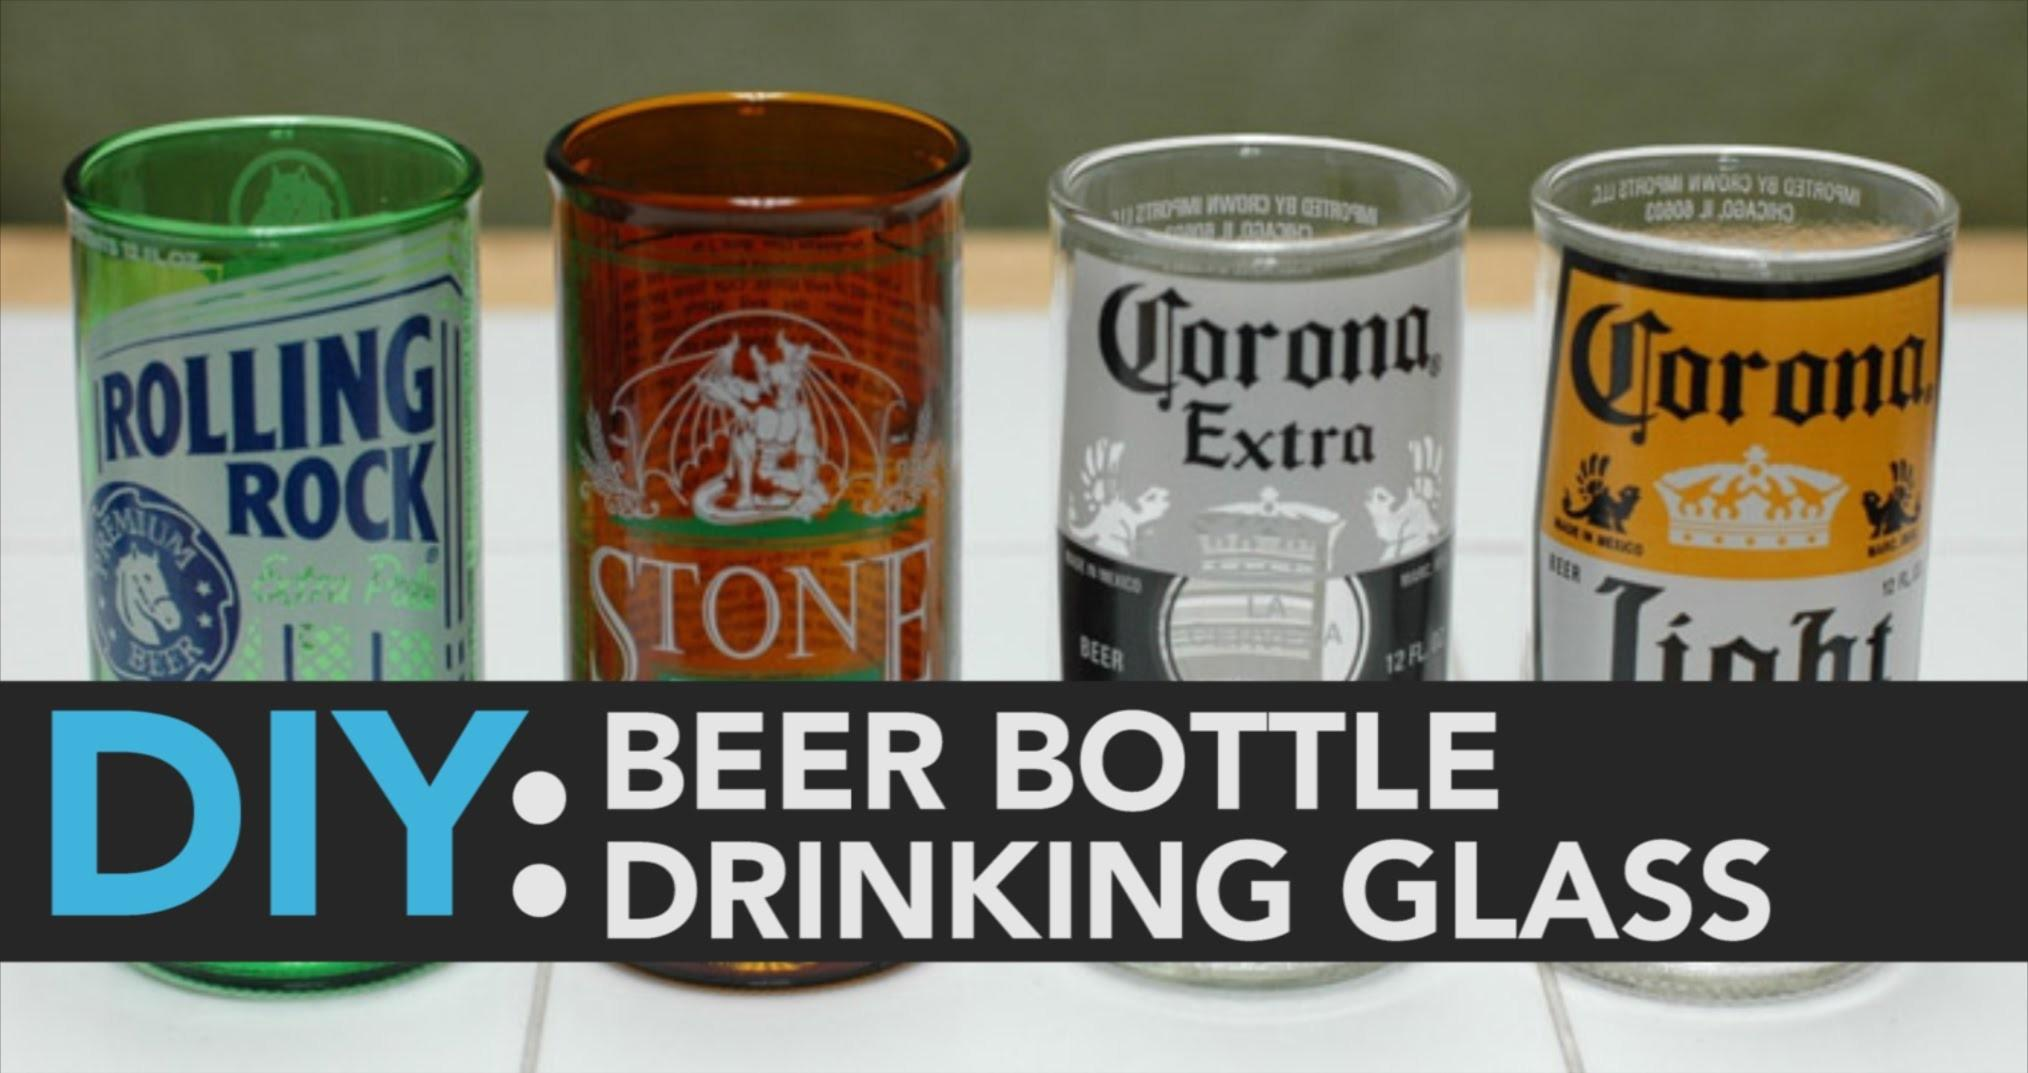 Diy Beer Bottle Drinking Glasses Meeting Place Business